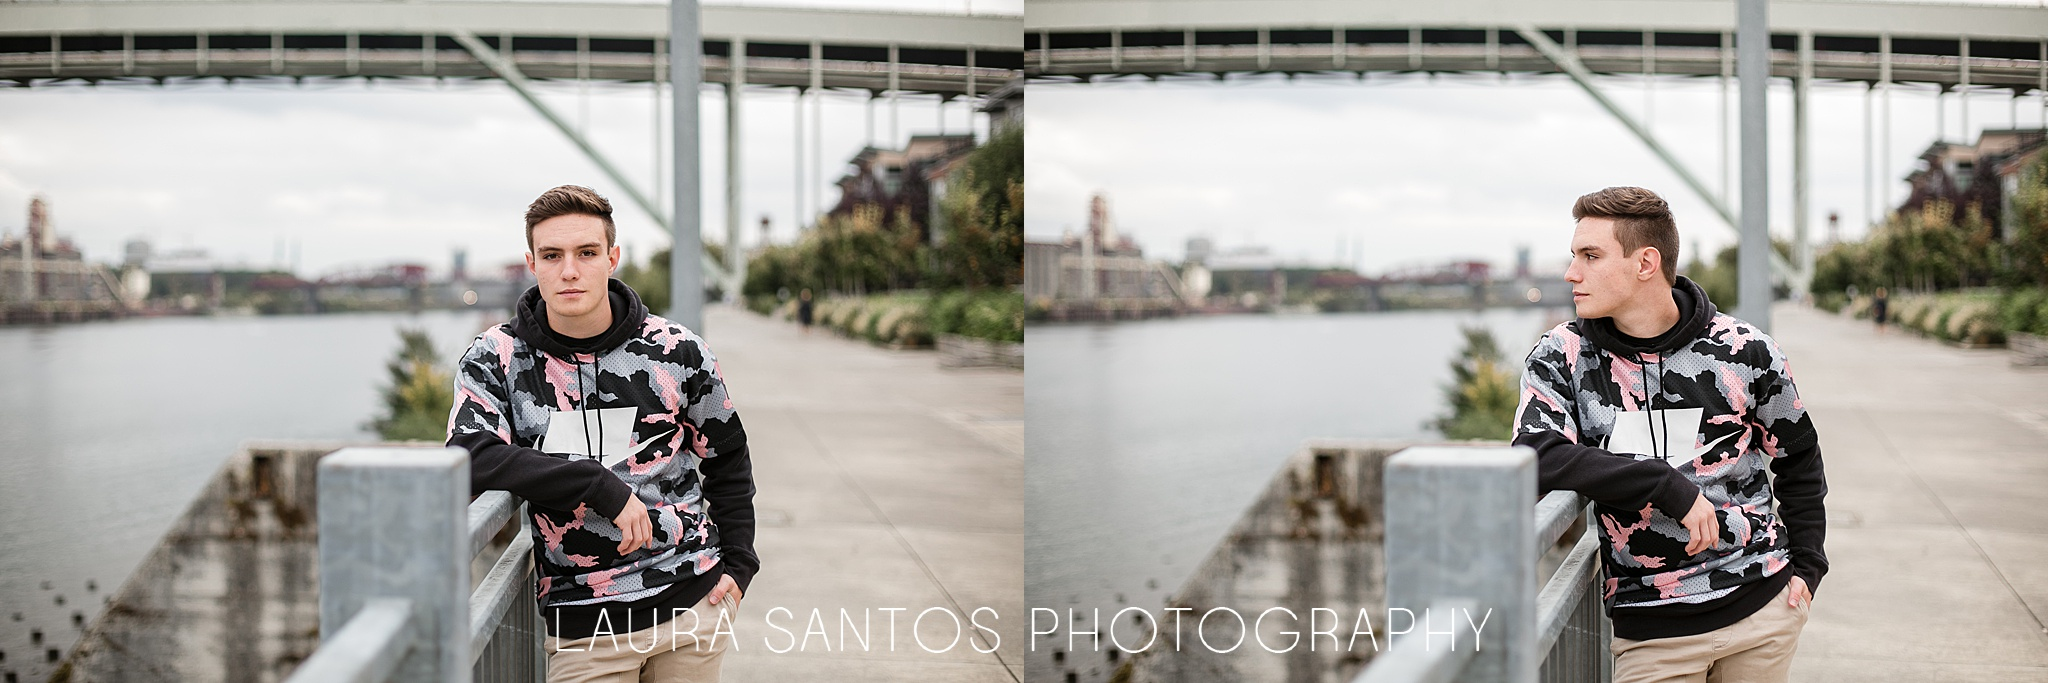 Laura Santos Photography Portland Oregon Family Photographer_0804.jpg